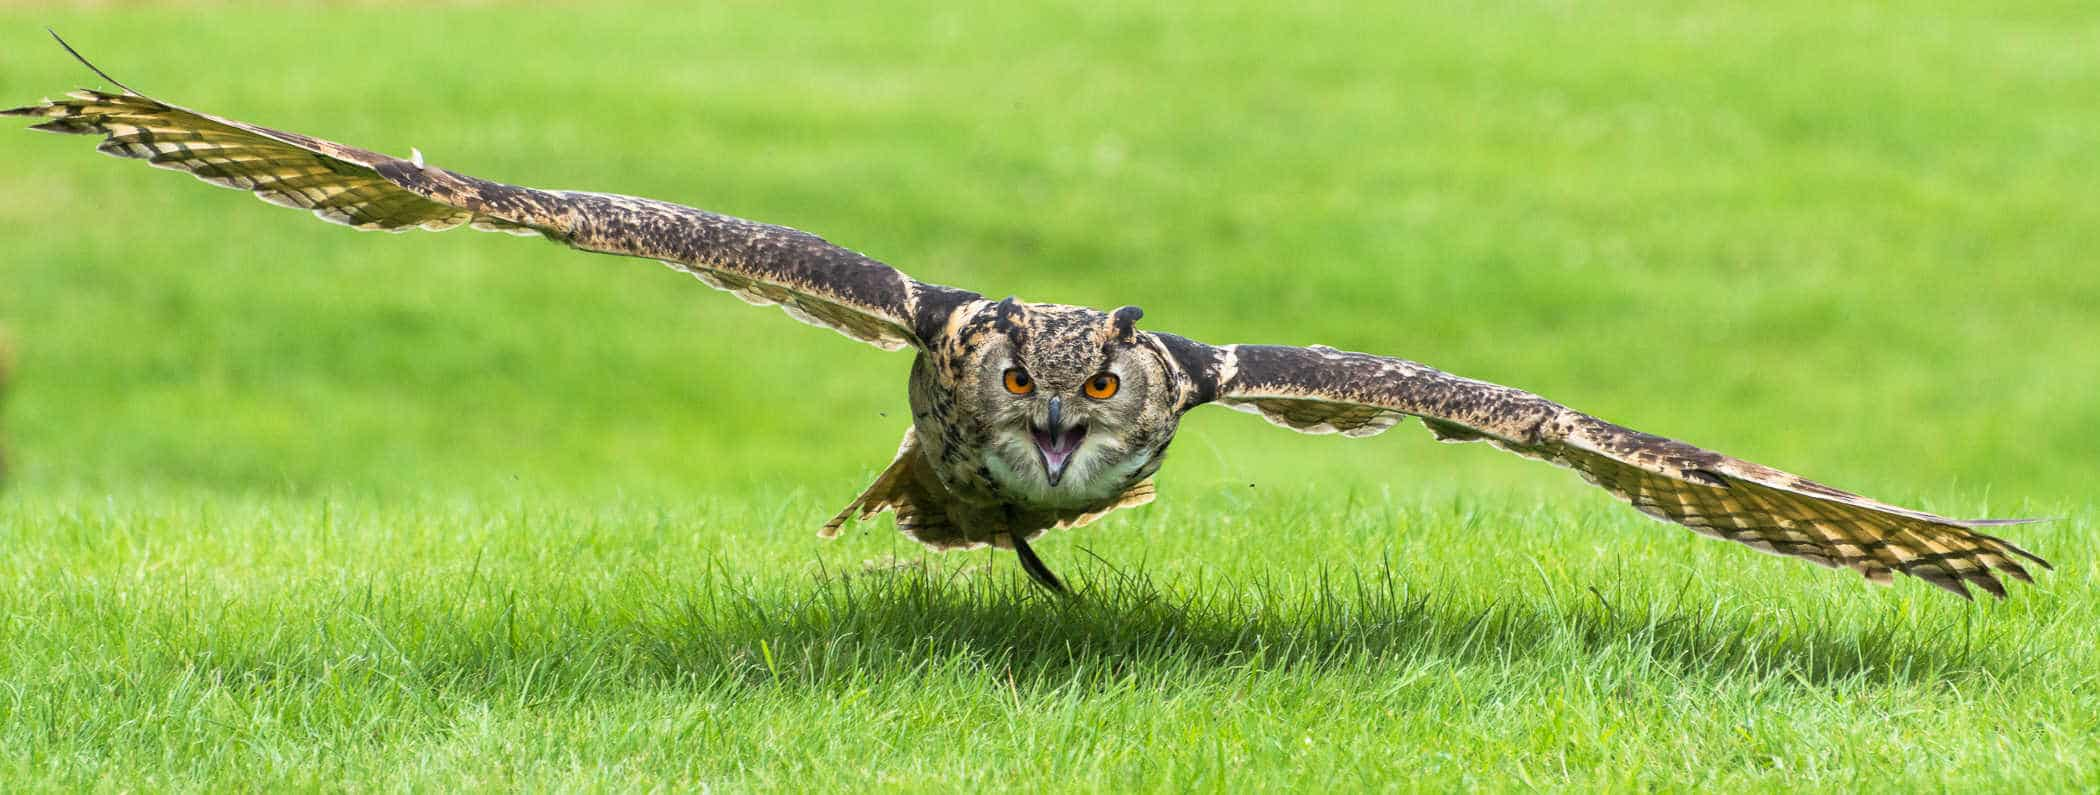 Eurasian Eagle Owl at the National Centre for Birds of Prey, Duncombe Park, Helmsley UK